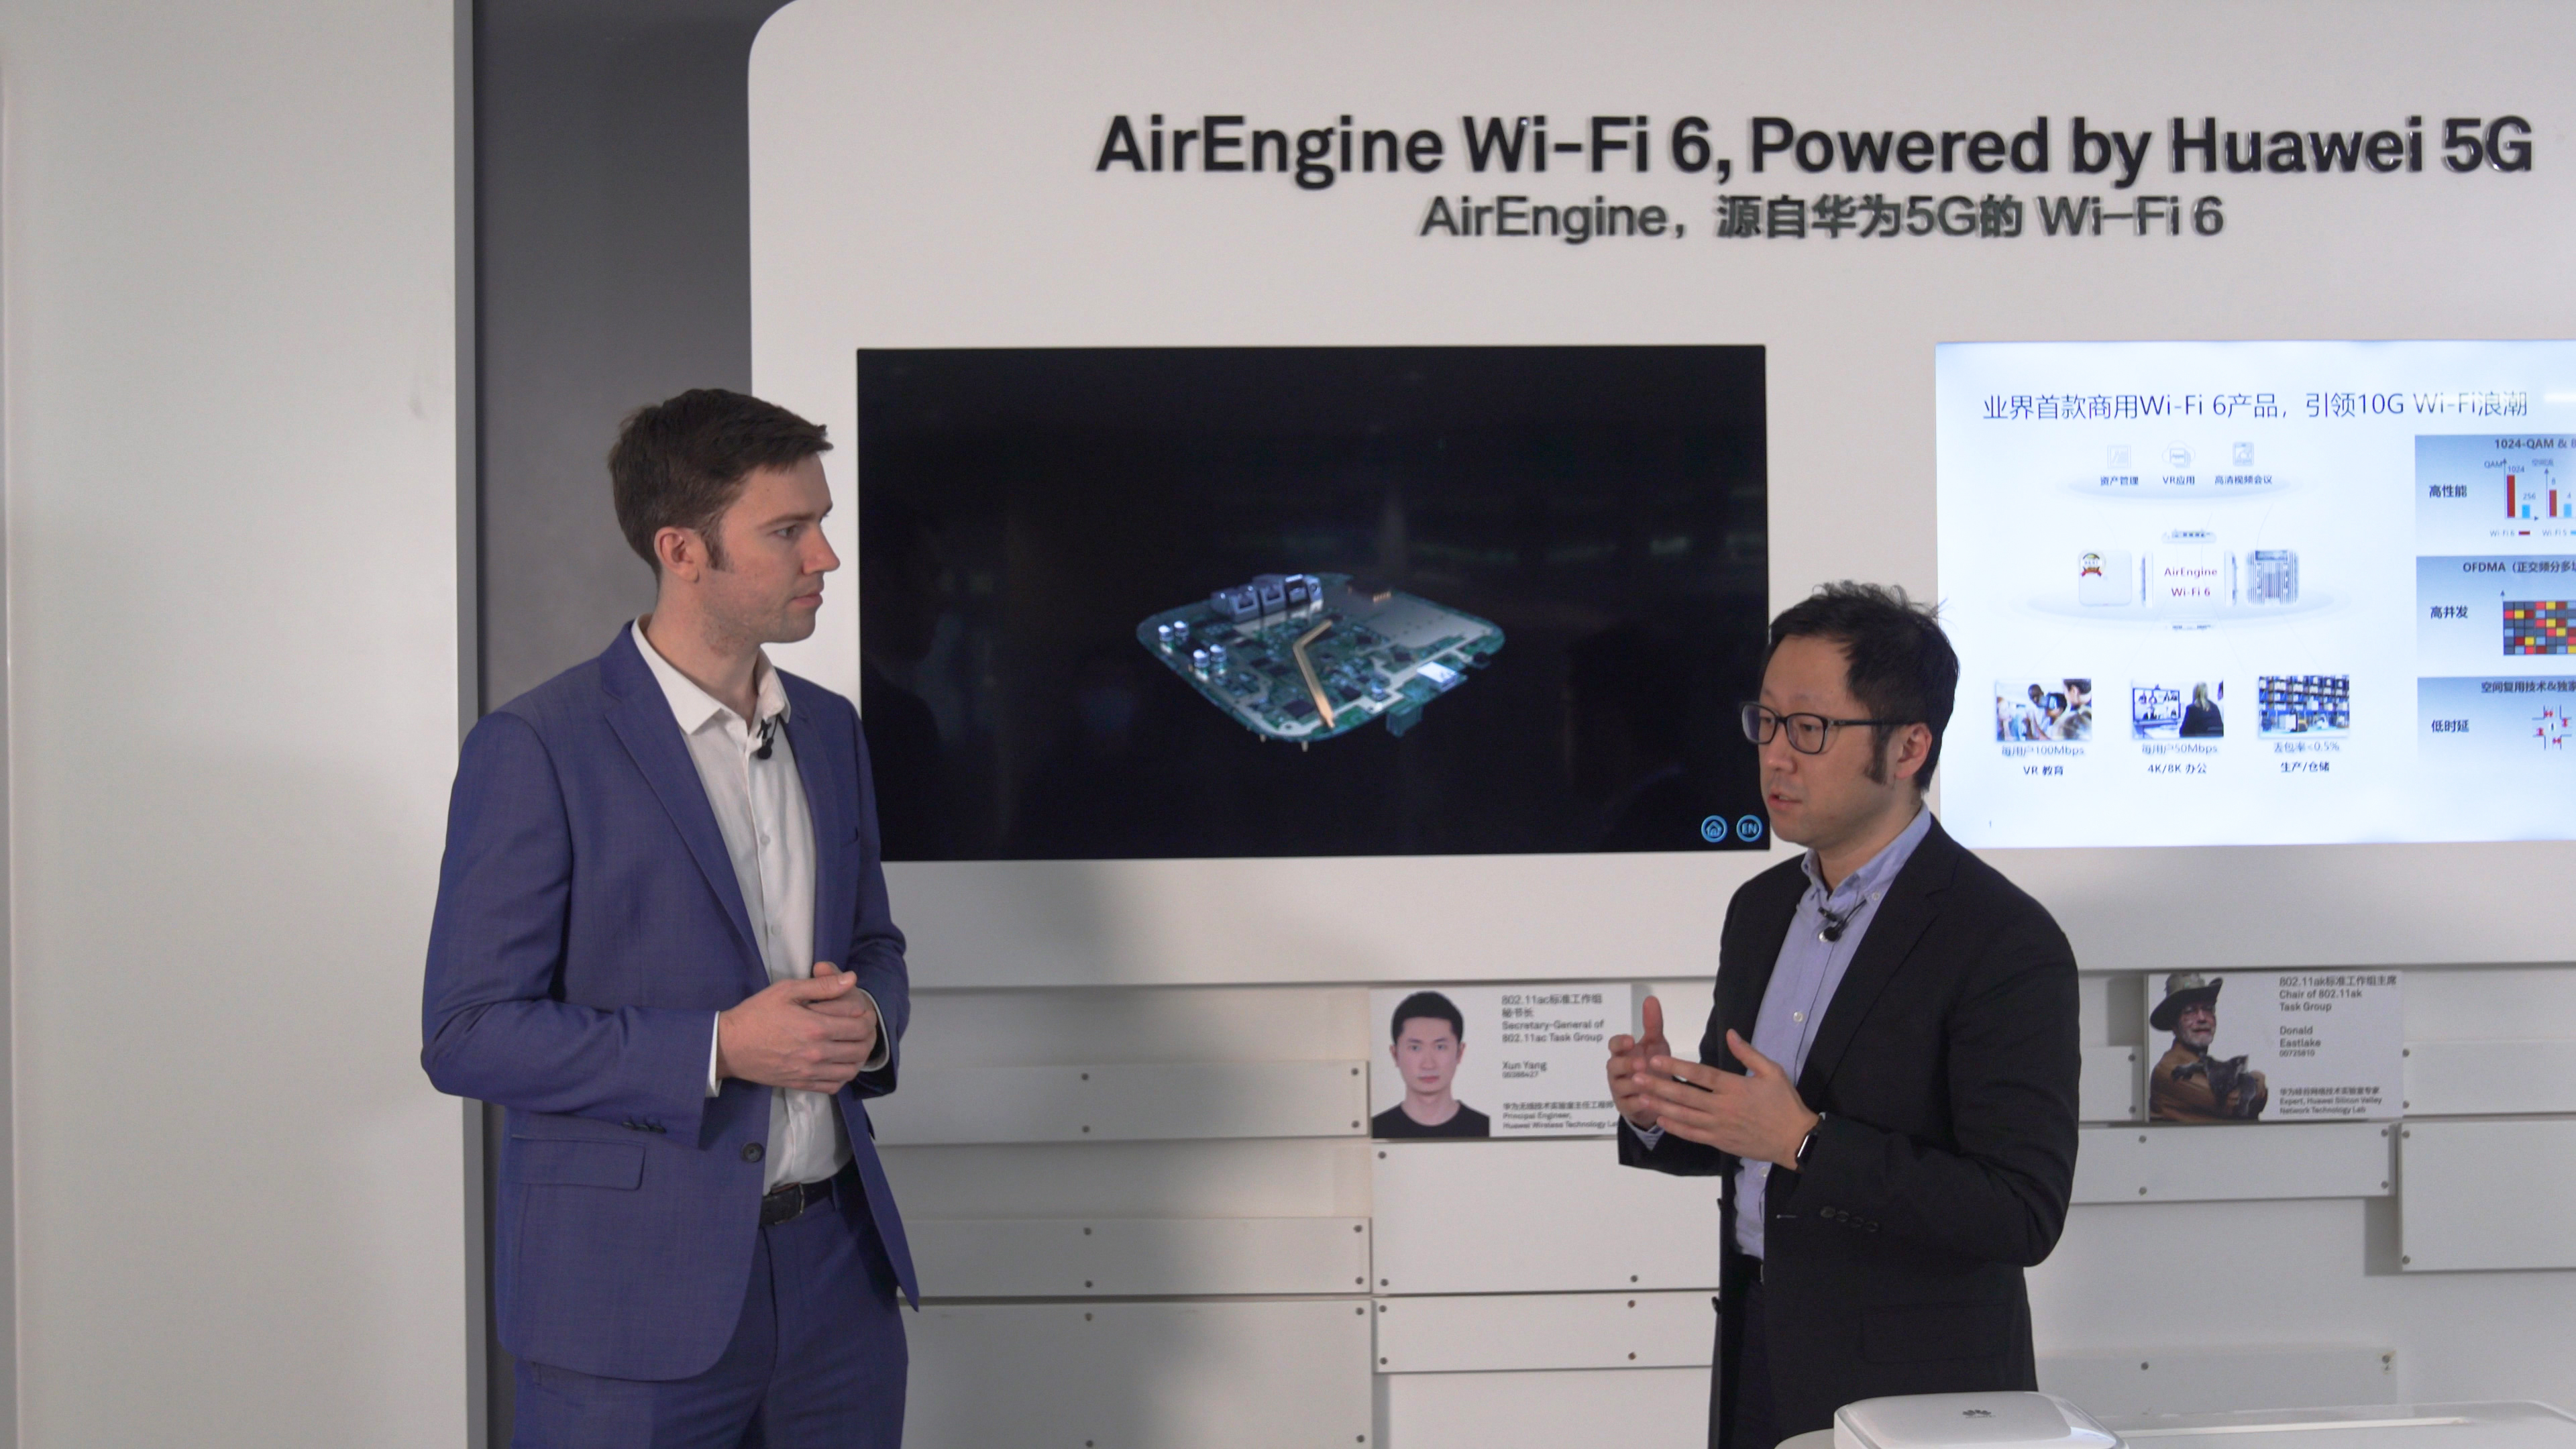 The Top 3 Cutting-Edge Technologies Behind Huawei AirEngine Wi-Fi 6